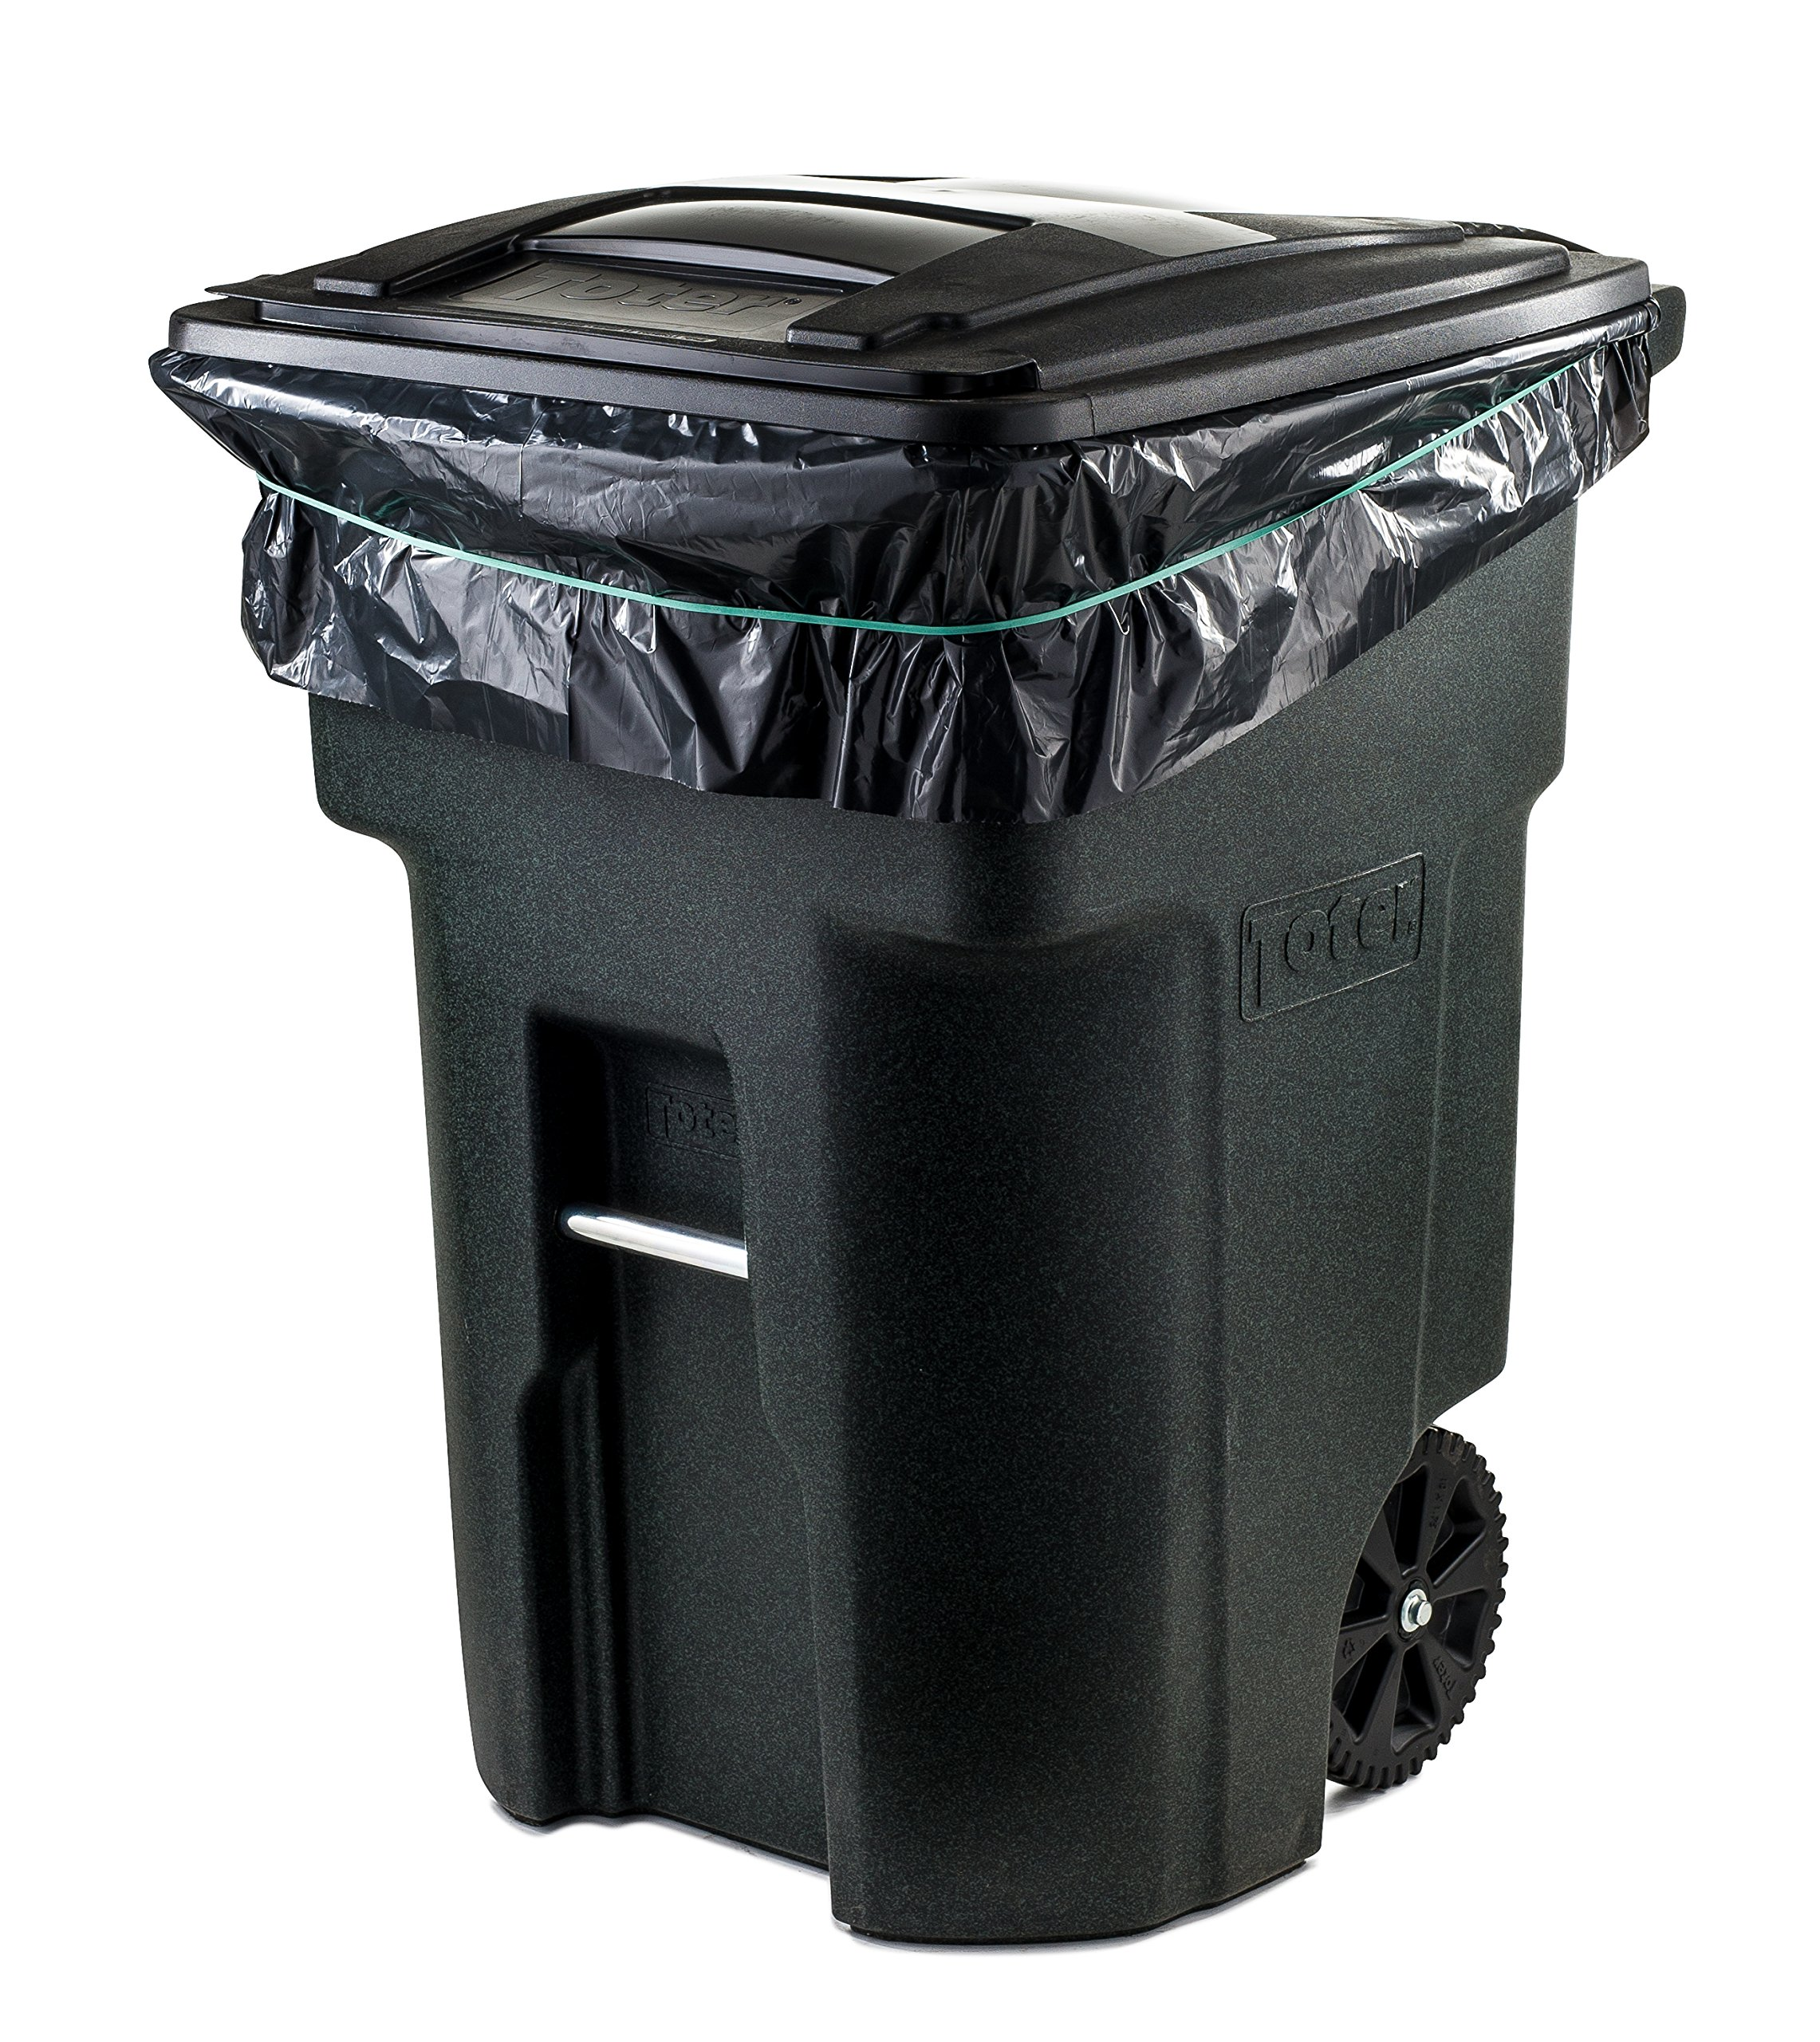 Plasticplace 95 Gal Trash bags, Black, 2 Mil, 61x68, 25 Bags per Case by Plasticplace (Image #3)